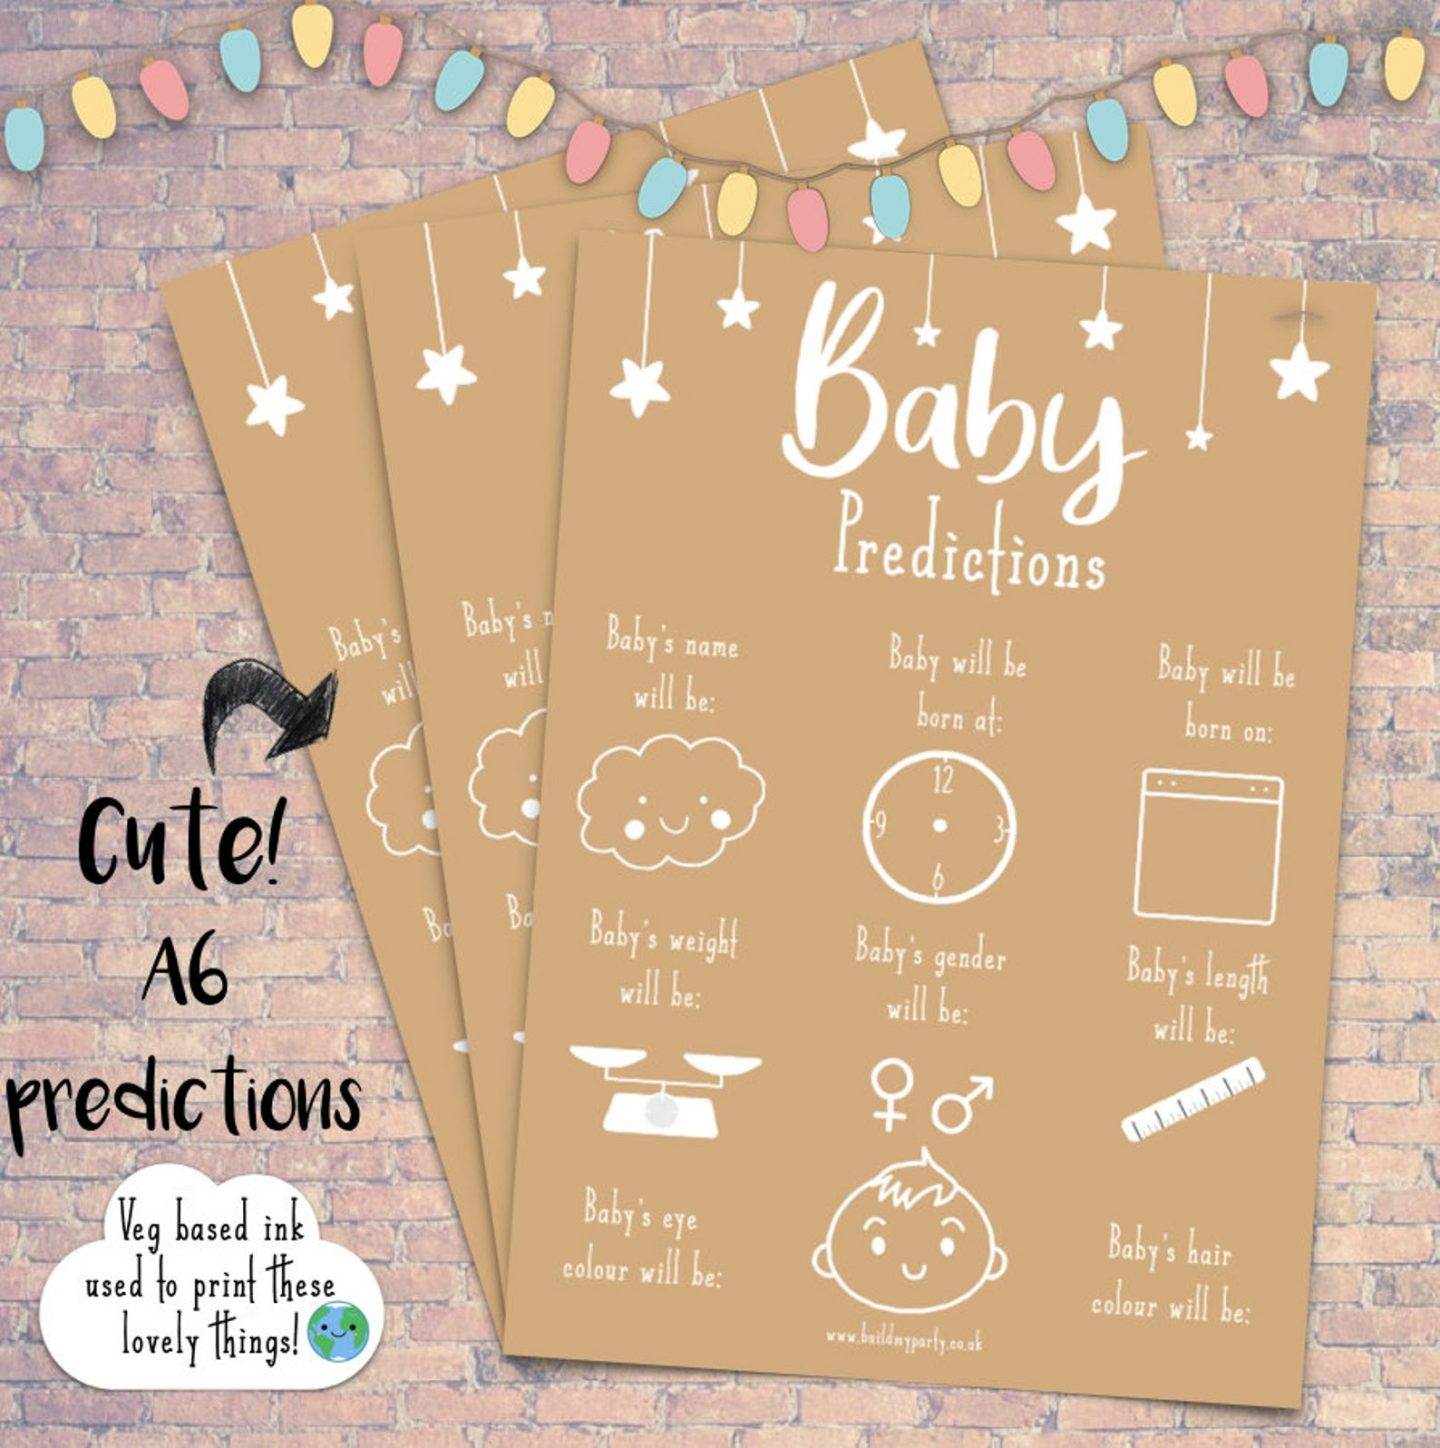 Affordable and fun baby shower game ideas